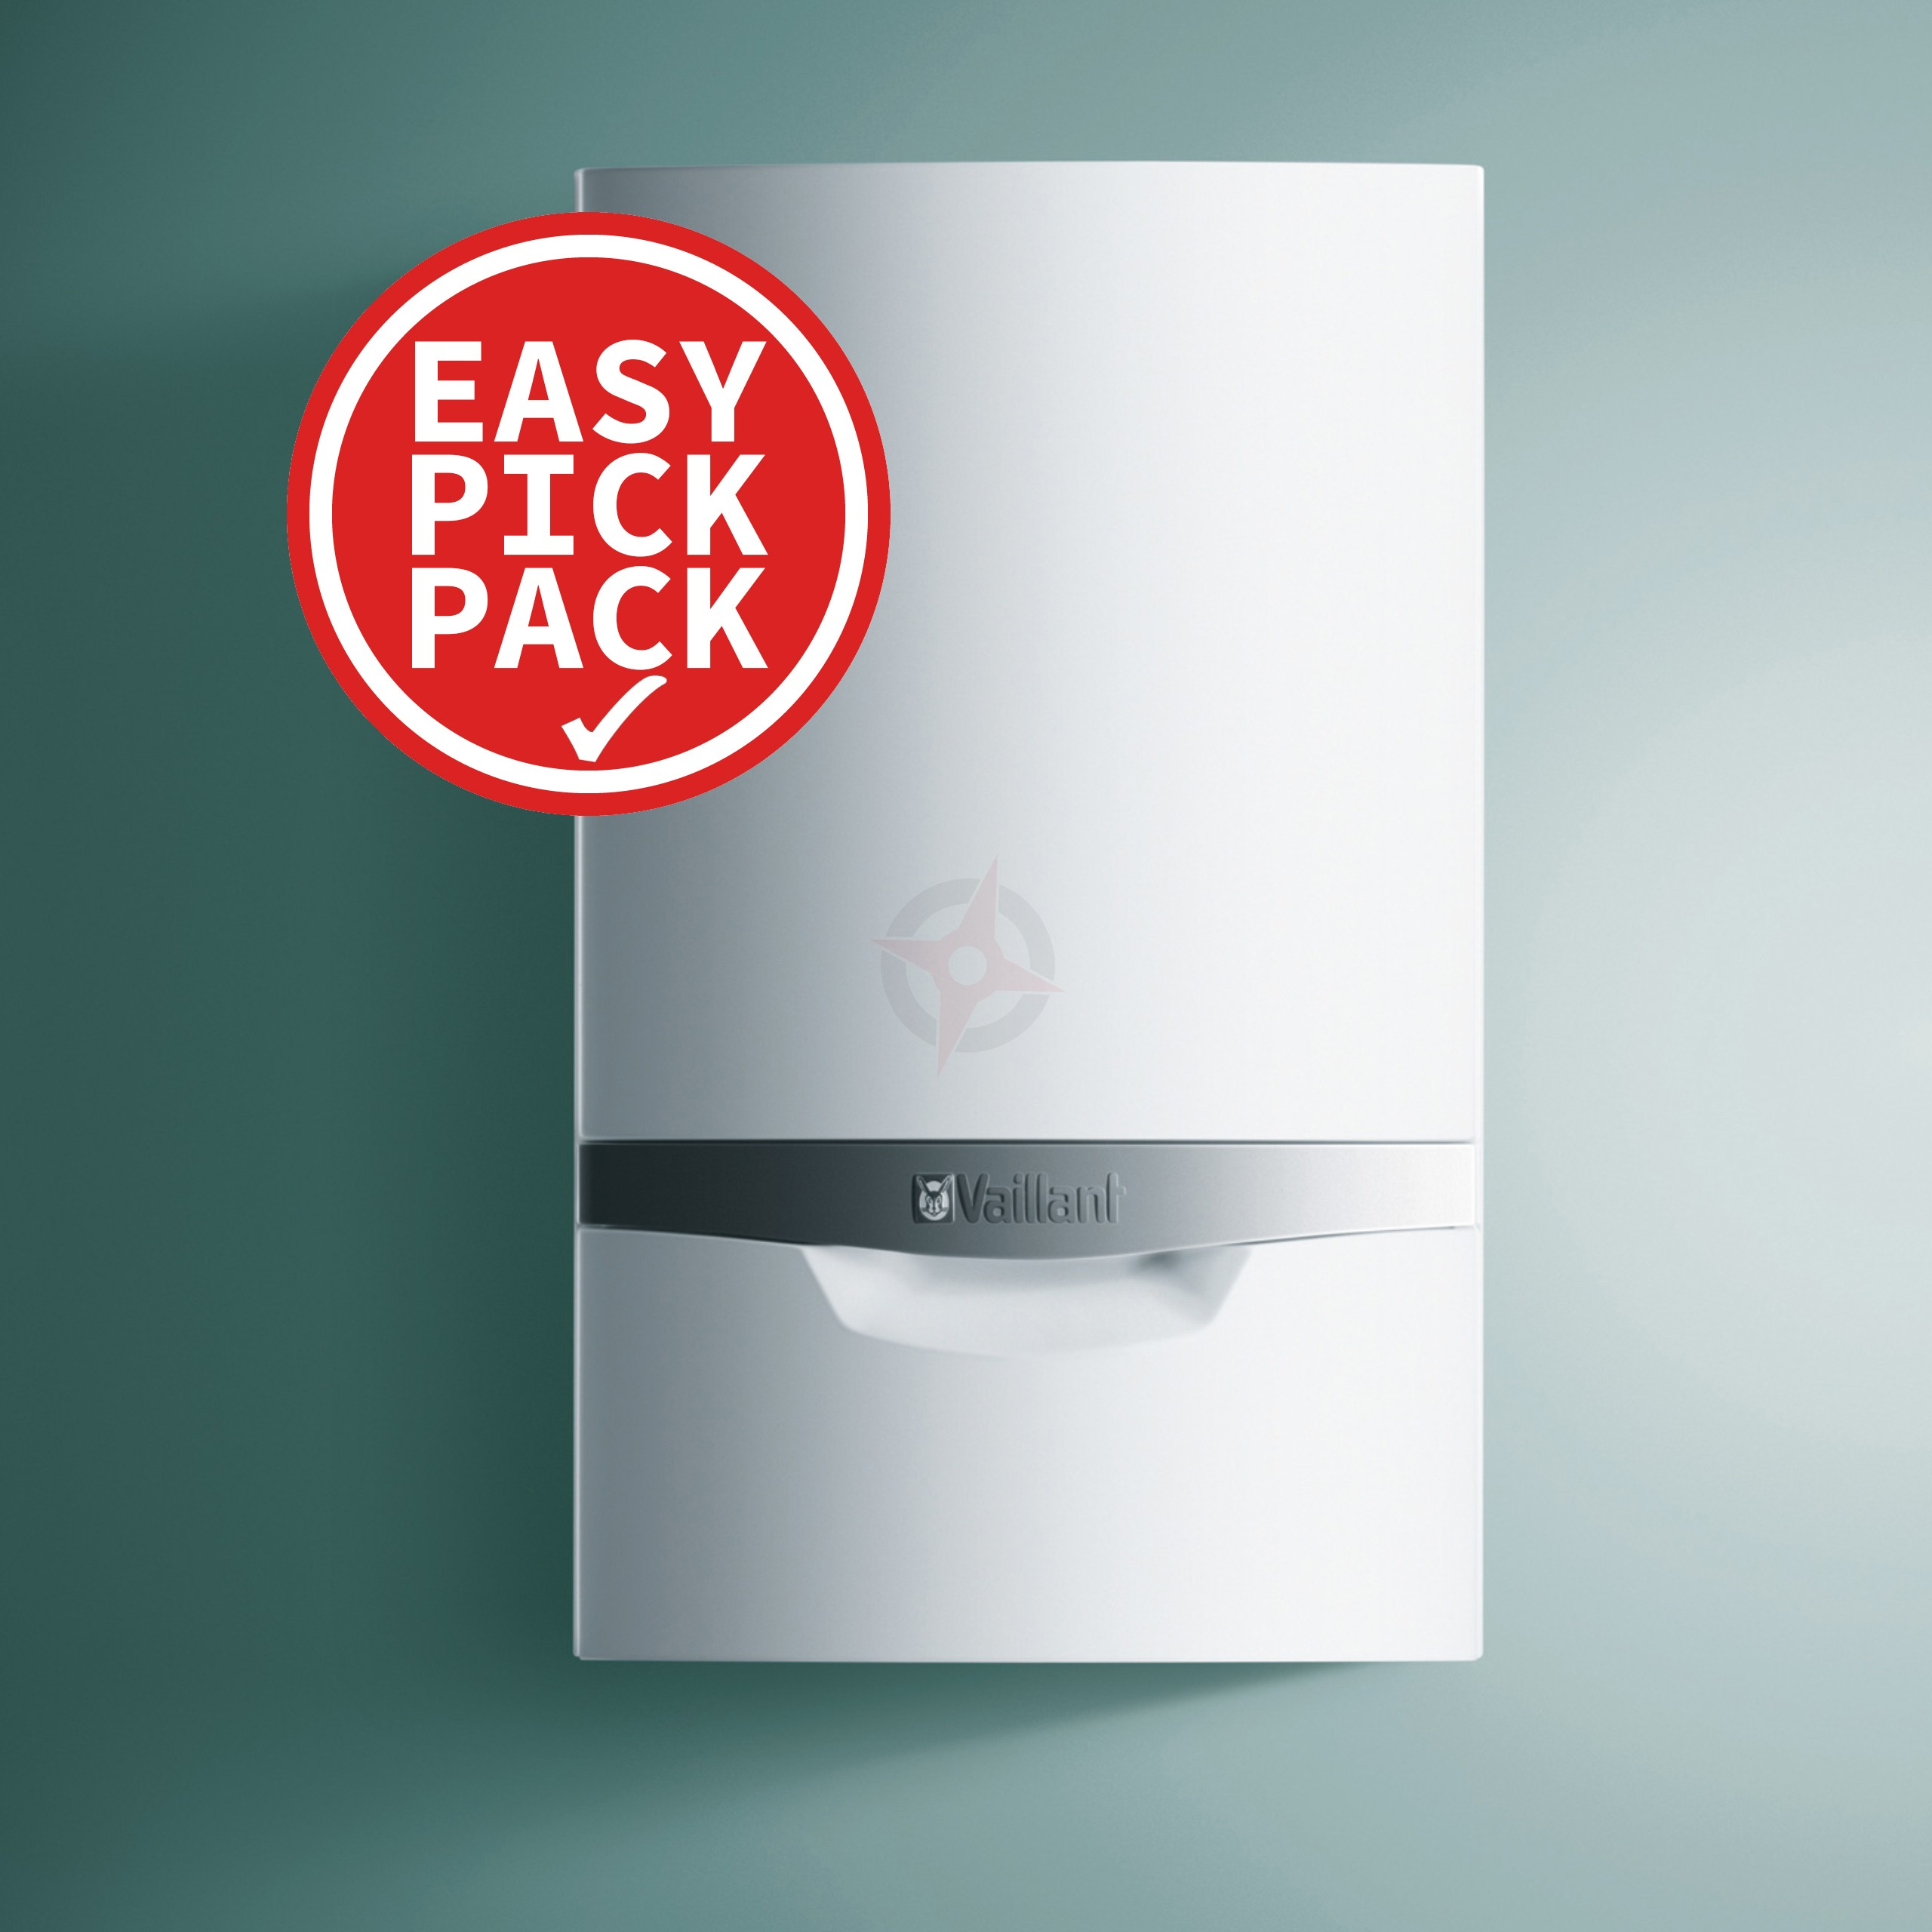 Vaillant ecoTEC Plus 637 (ErP) System Boiler Easy Pick Pack